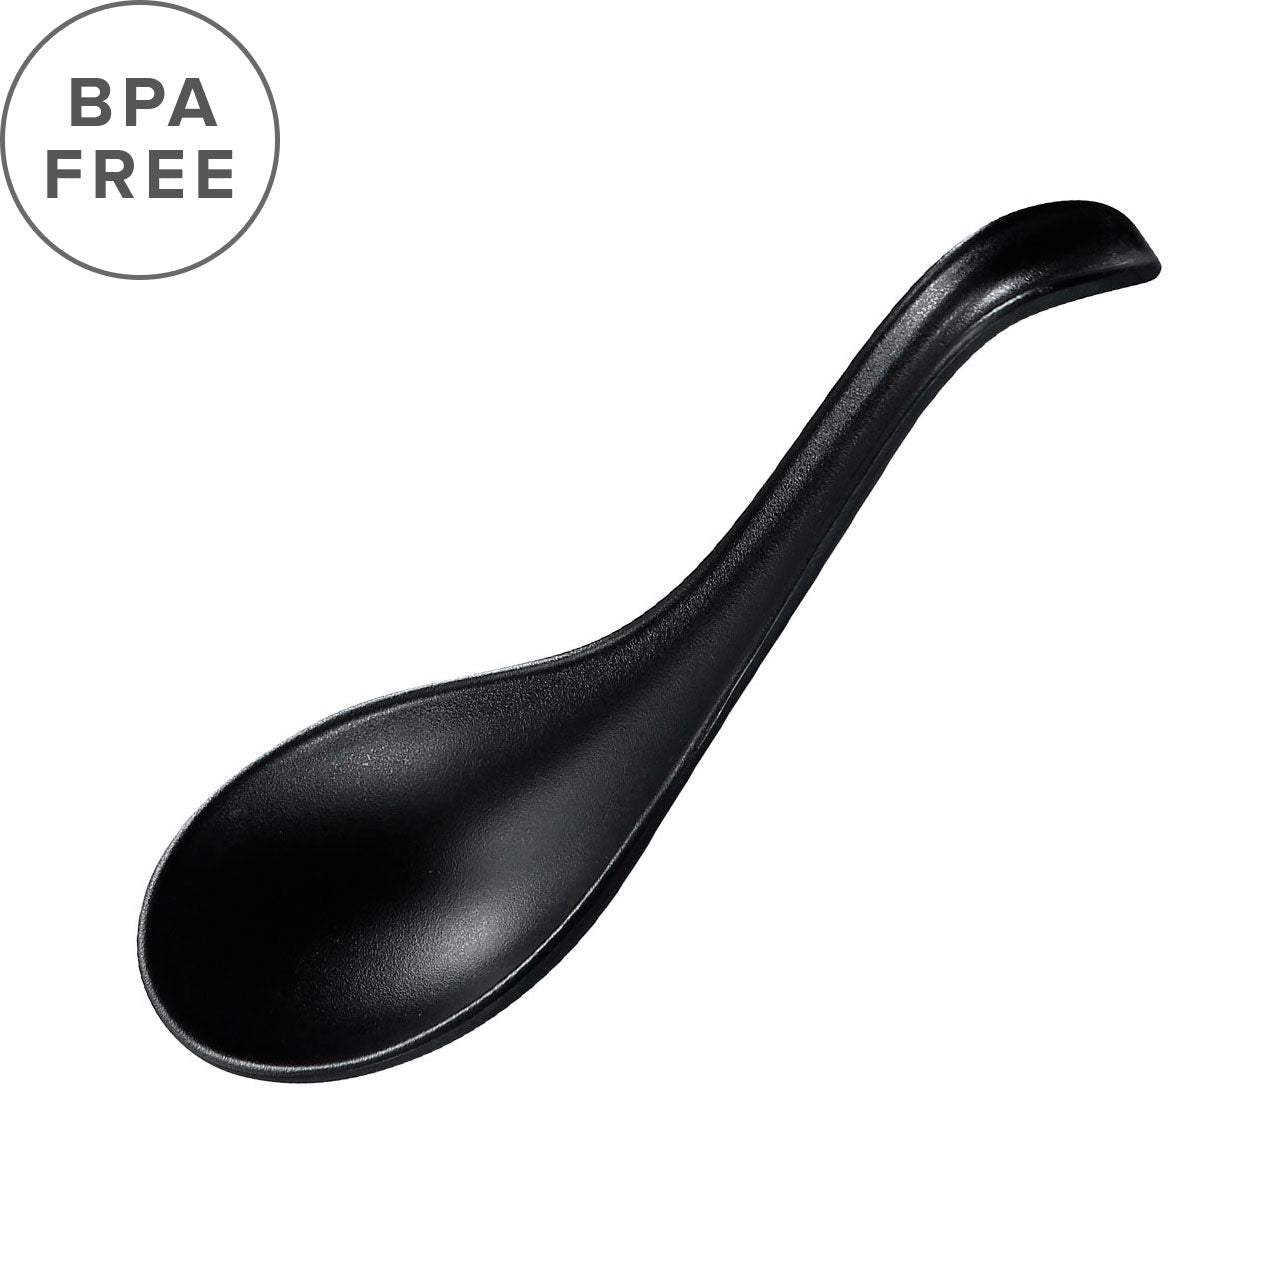 "Melamine Black Matte Renge Ramen Spoon 6.25"" Length"